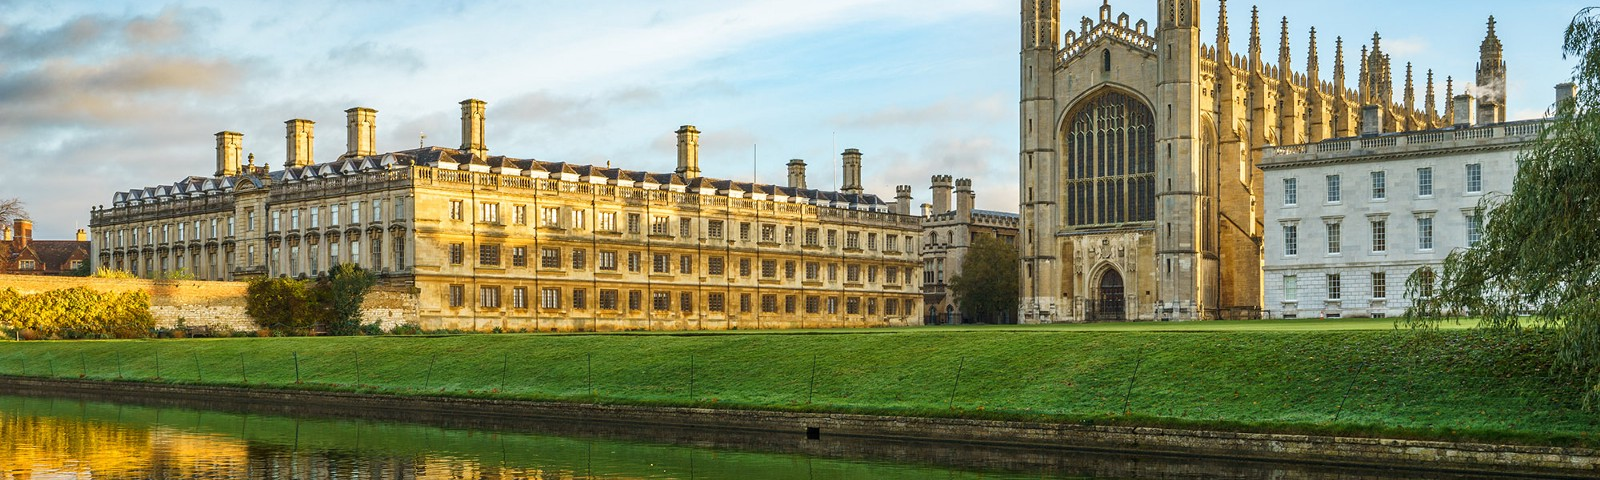 Cambridge University, just one of many schools in the UK affected by Ofqual's new algorithm for grading A-levels.